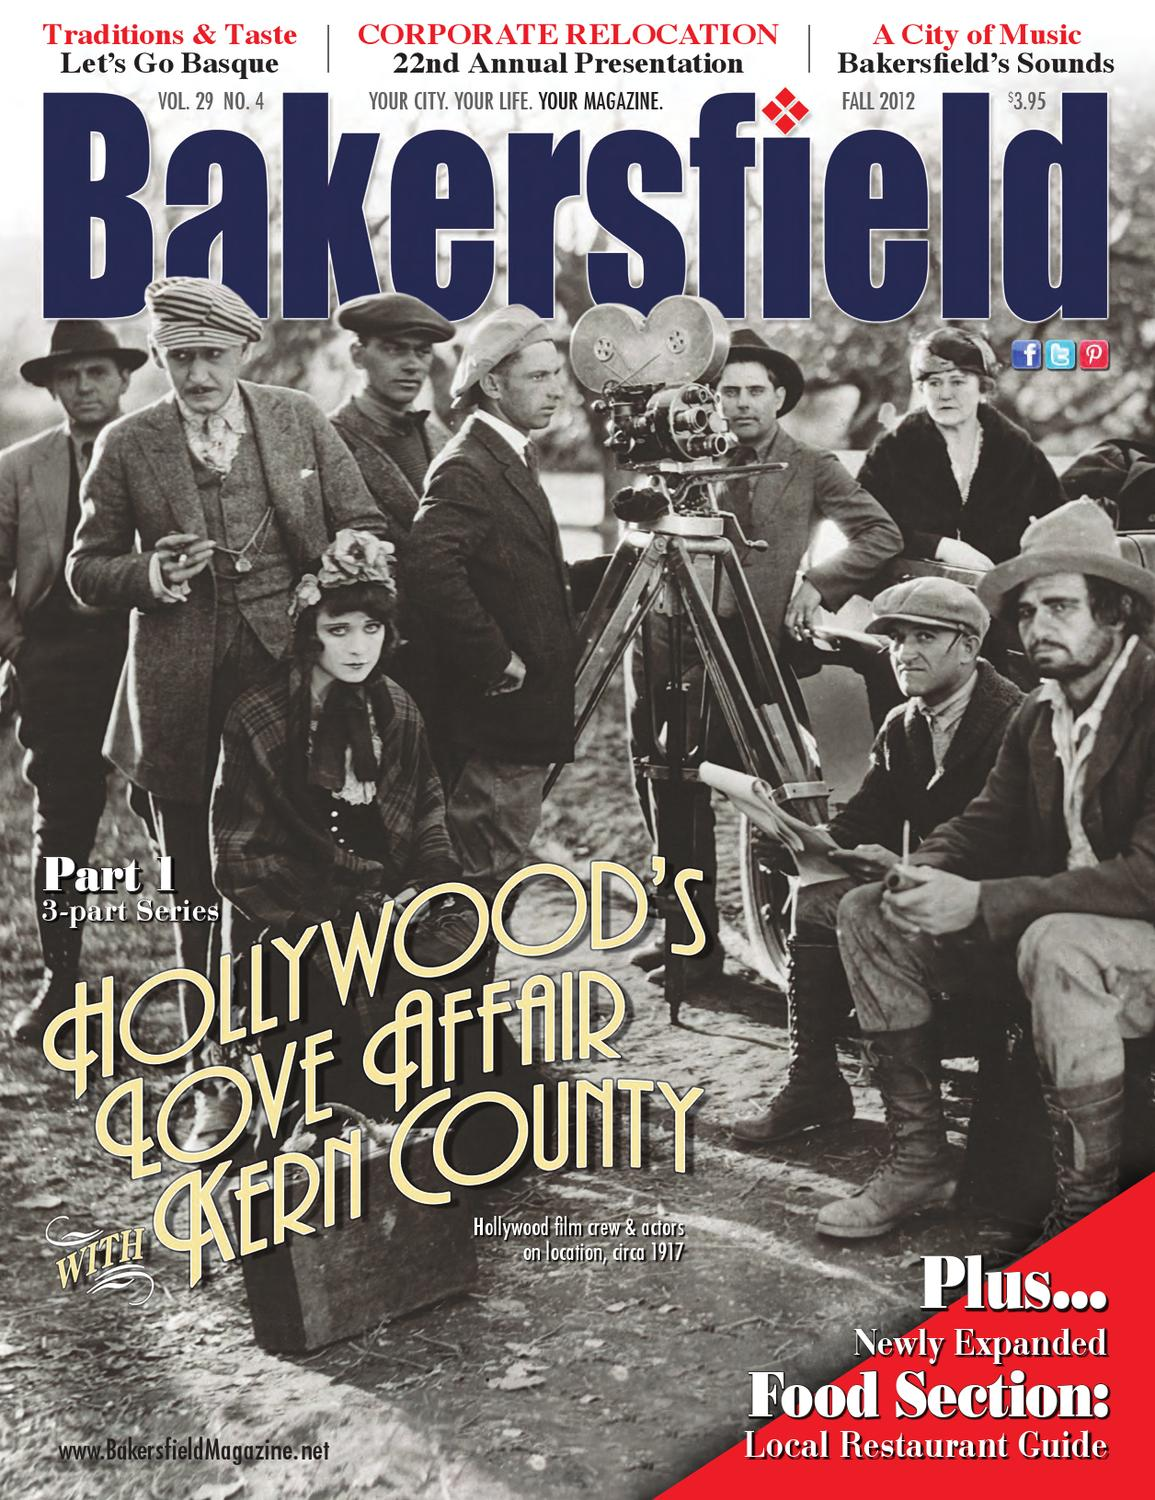 Bakersfield Magazine 29 4 Corporate Relocation By